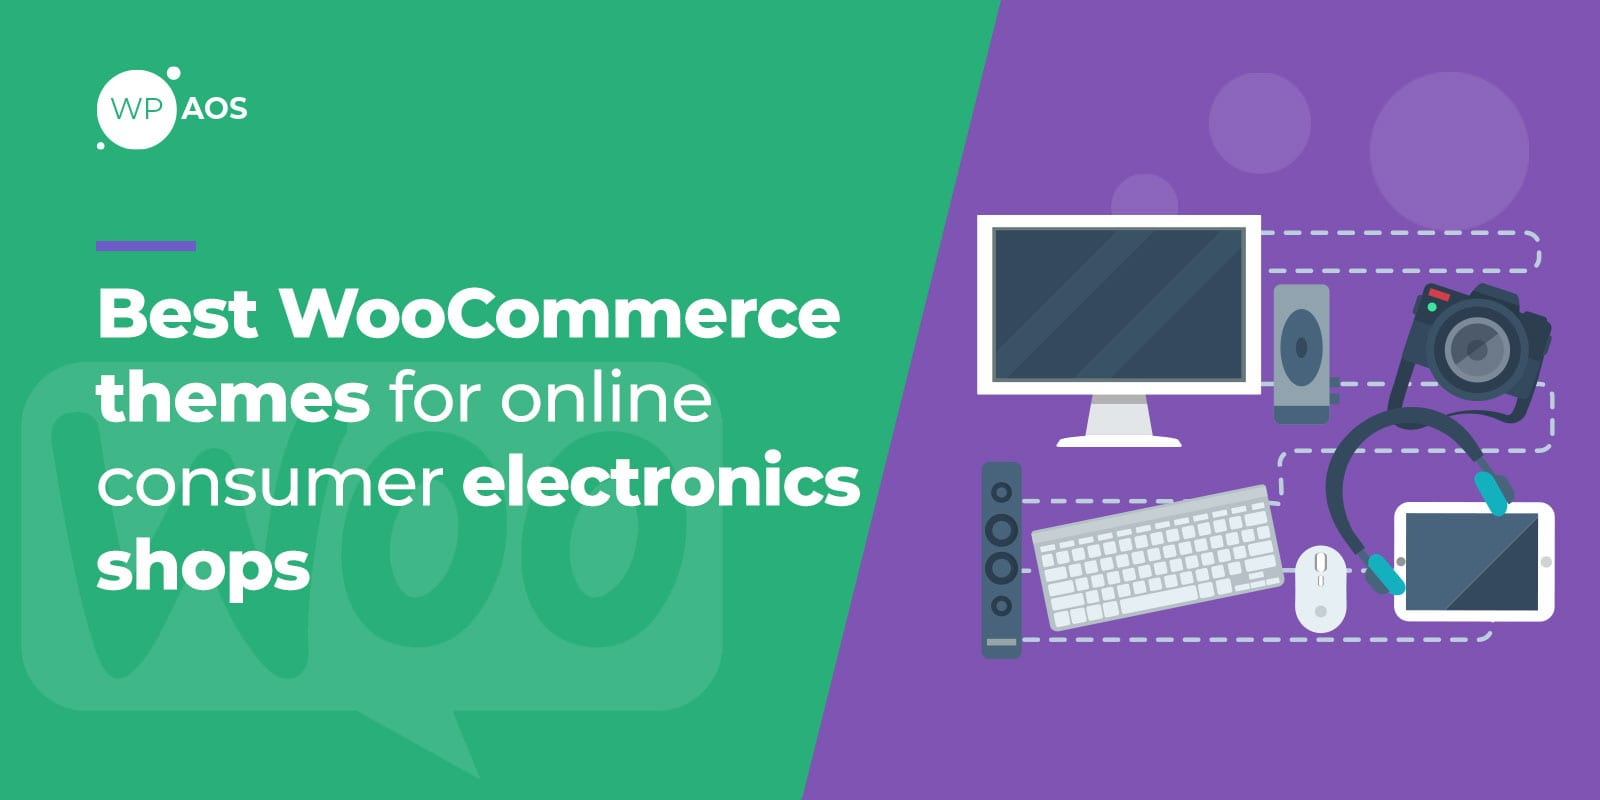 Best WooCommerce themes, Create electronics shop, wpaos